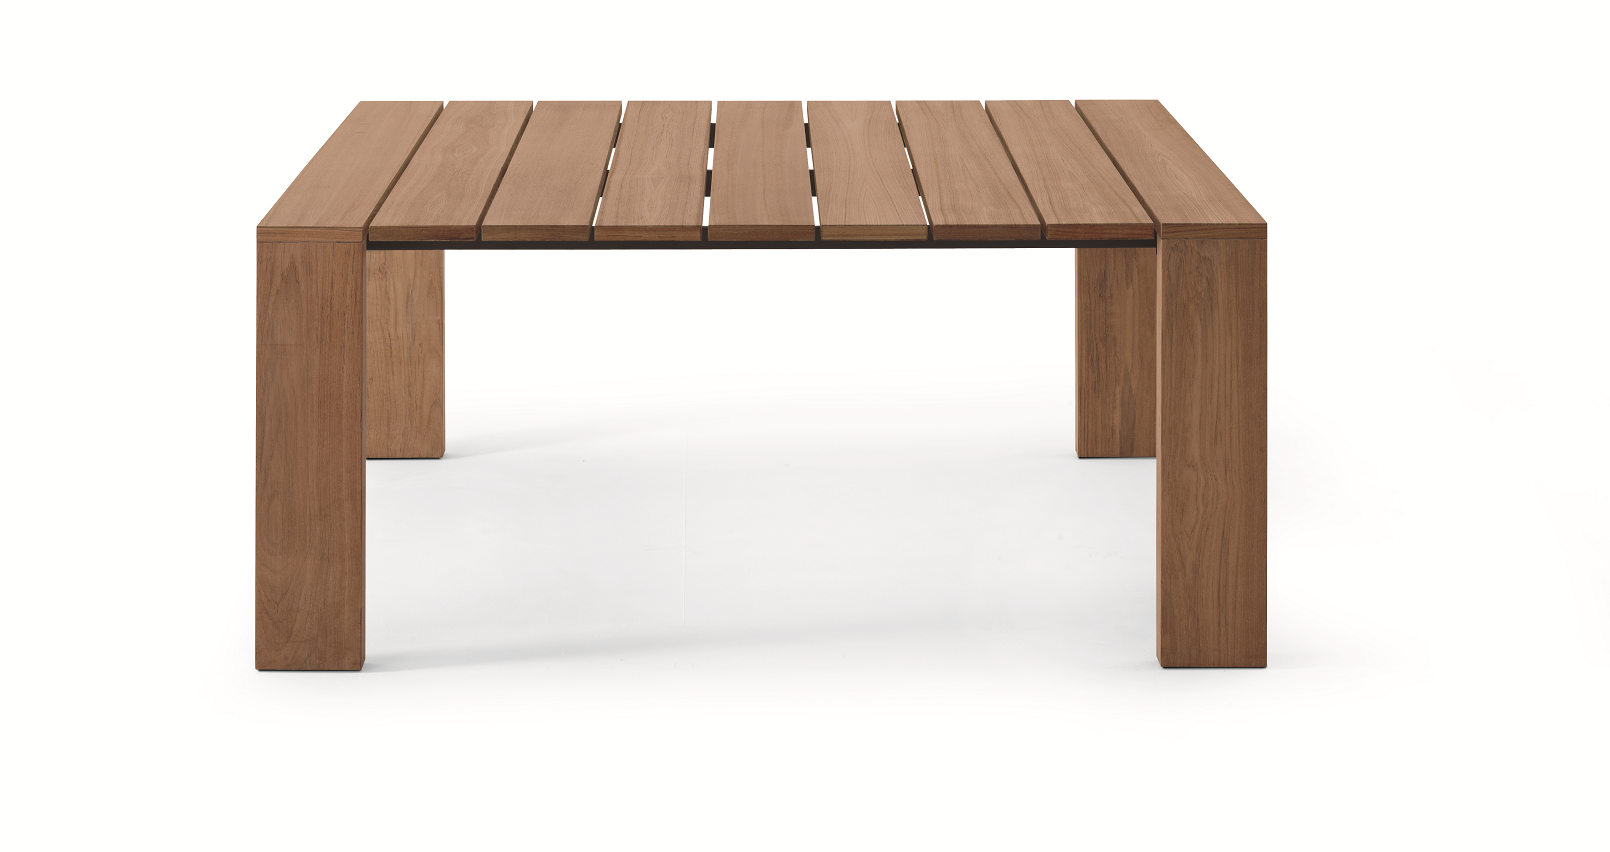 017 table.png